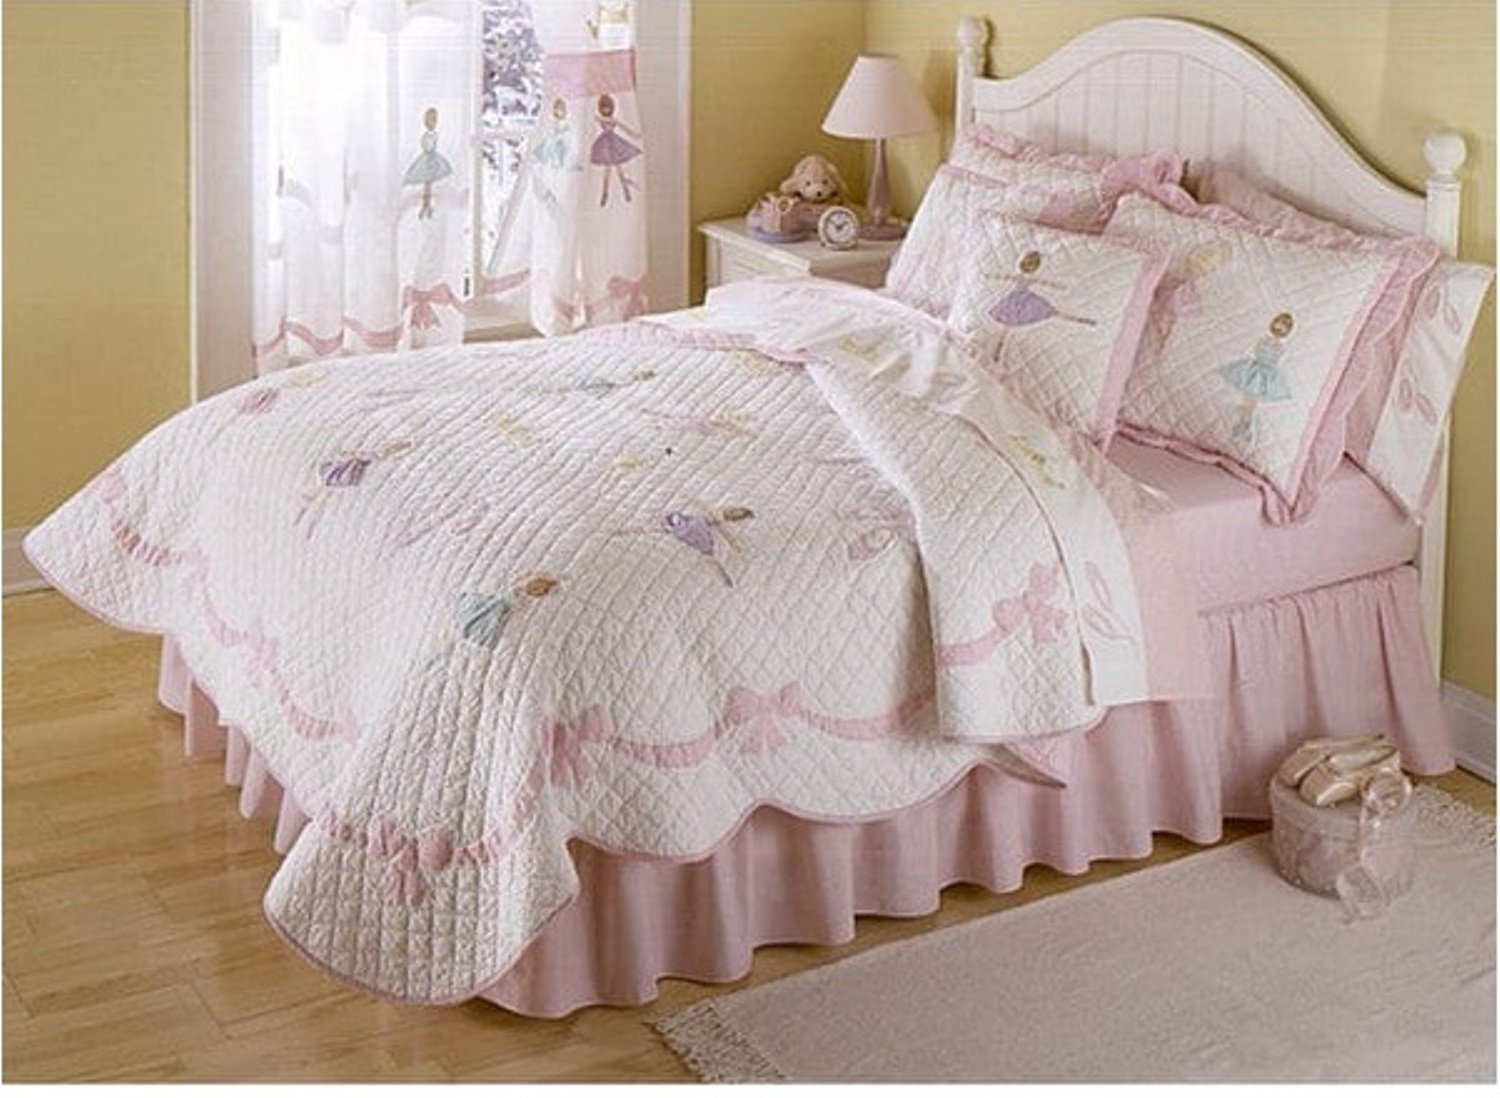 3 Piece Dancing Ballerina Design Quilt Set Full/Queen Size, Featuring Embroidered Diamond Ribbon Pattern Bedding, Playful Fun Dance Lover Inspired Girls Bedroom Decoration, Pink, White, Multicolor